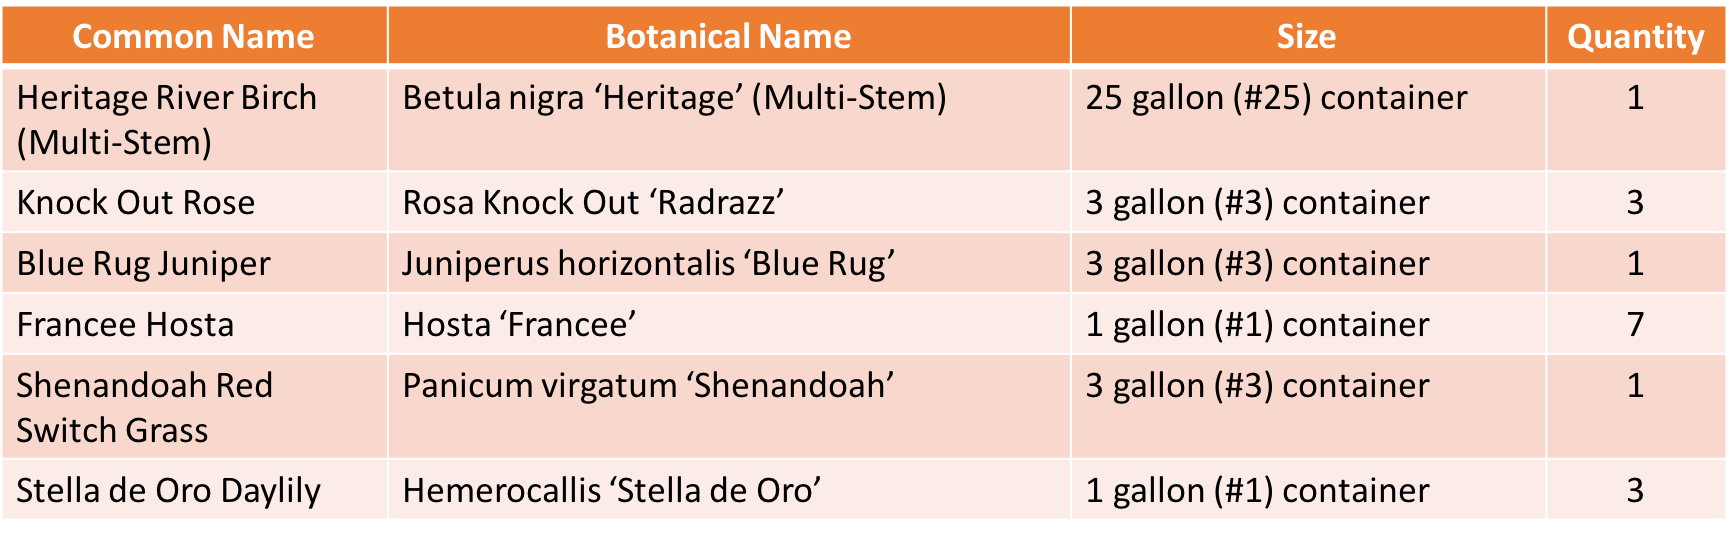 plant-list-for-clay-soil-for-website-rev2.png